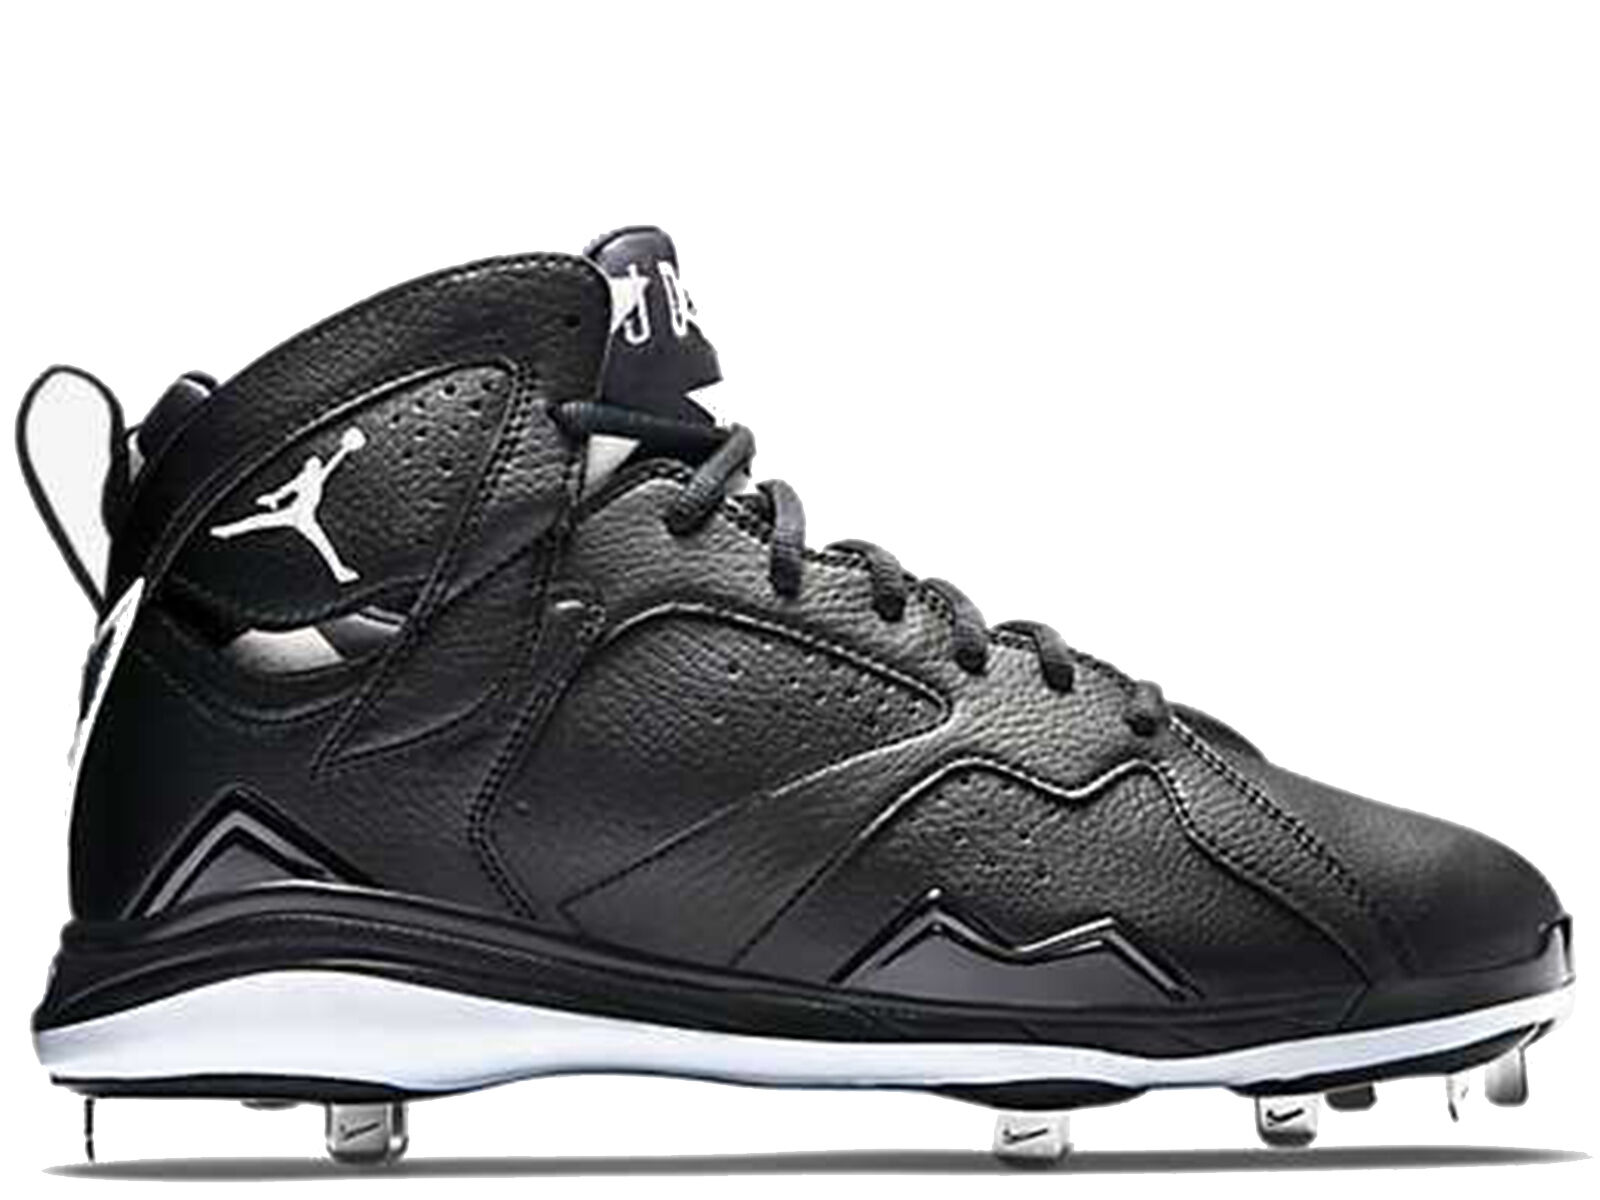 Men's Brand New Air Jordan 7 Retro Metal Cleat Athletic Sneakers [684943 010]